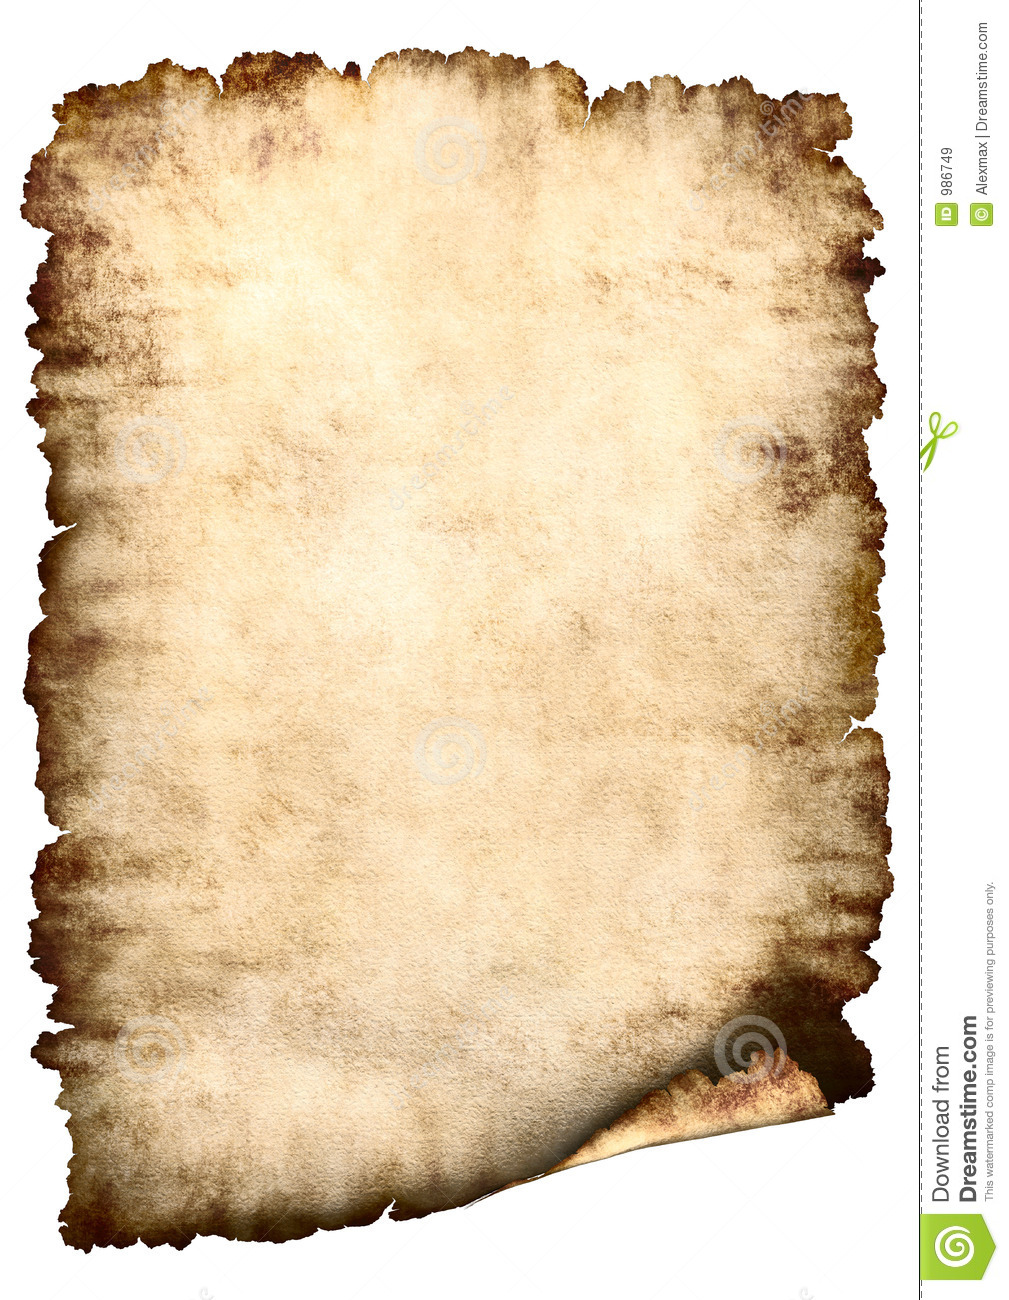 Parchment Paper Background Royalty Free Stock Images ...